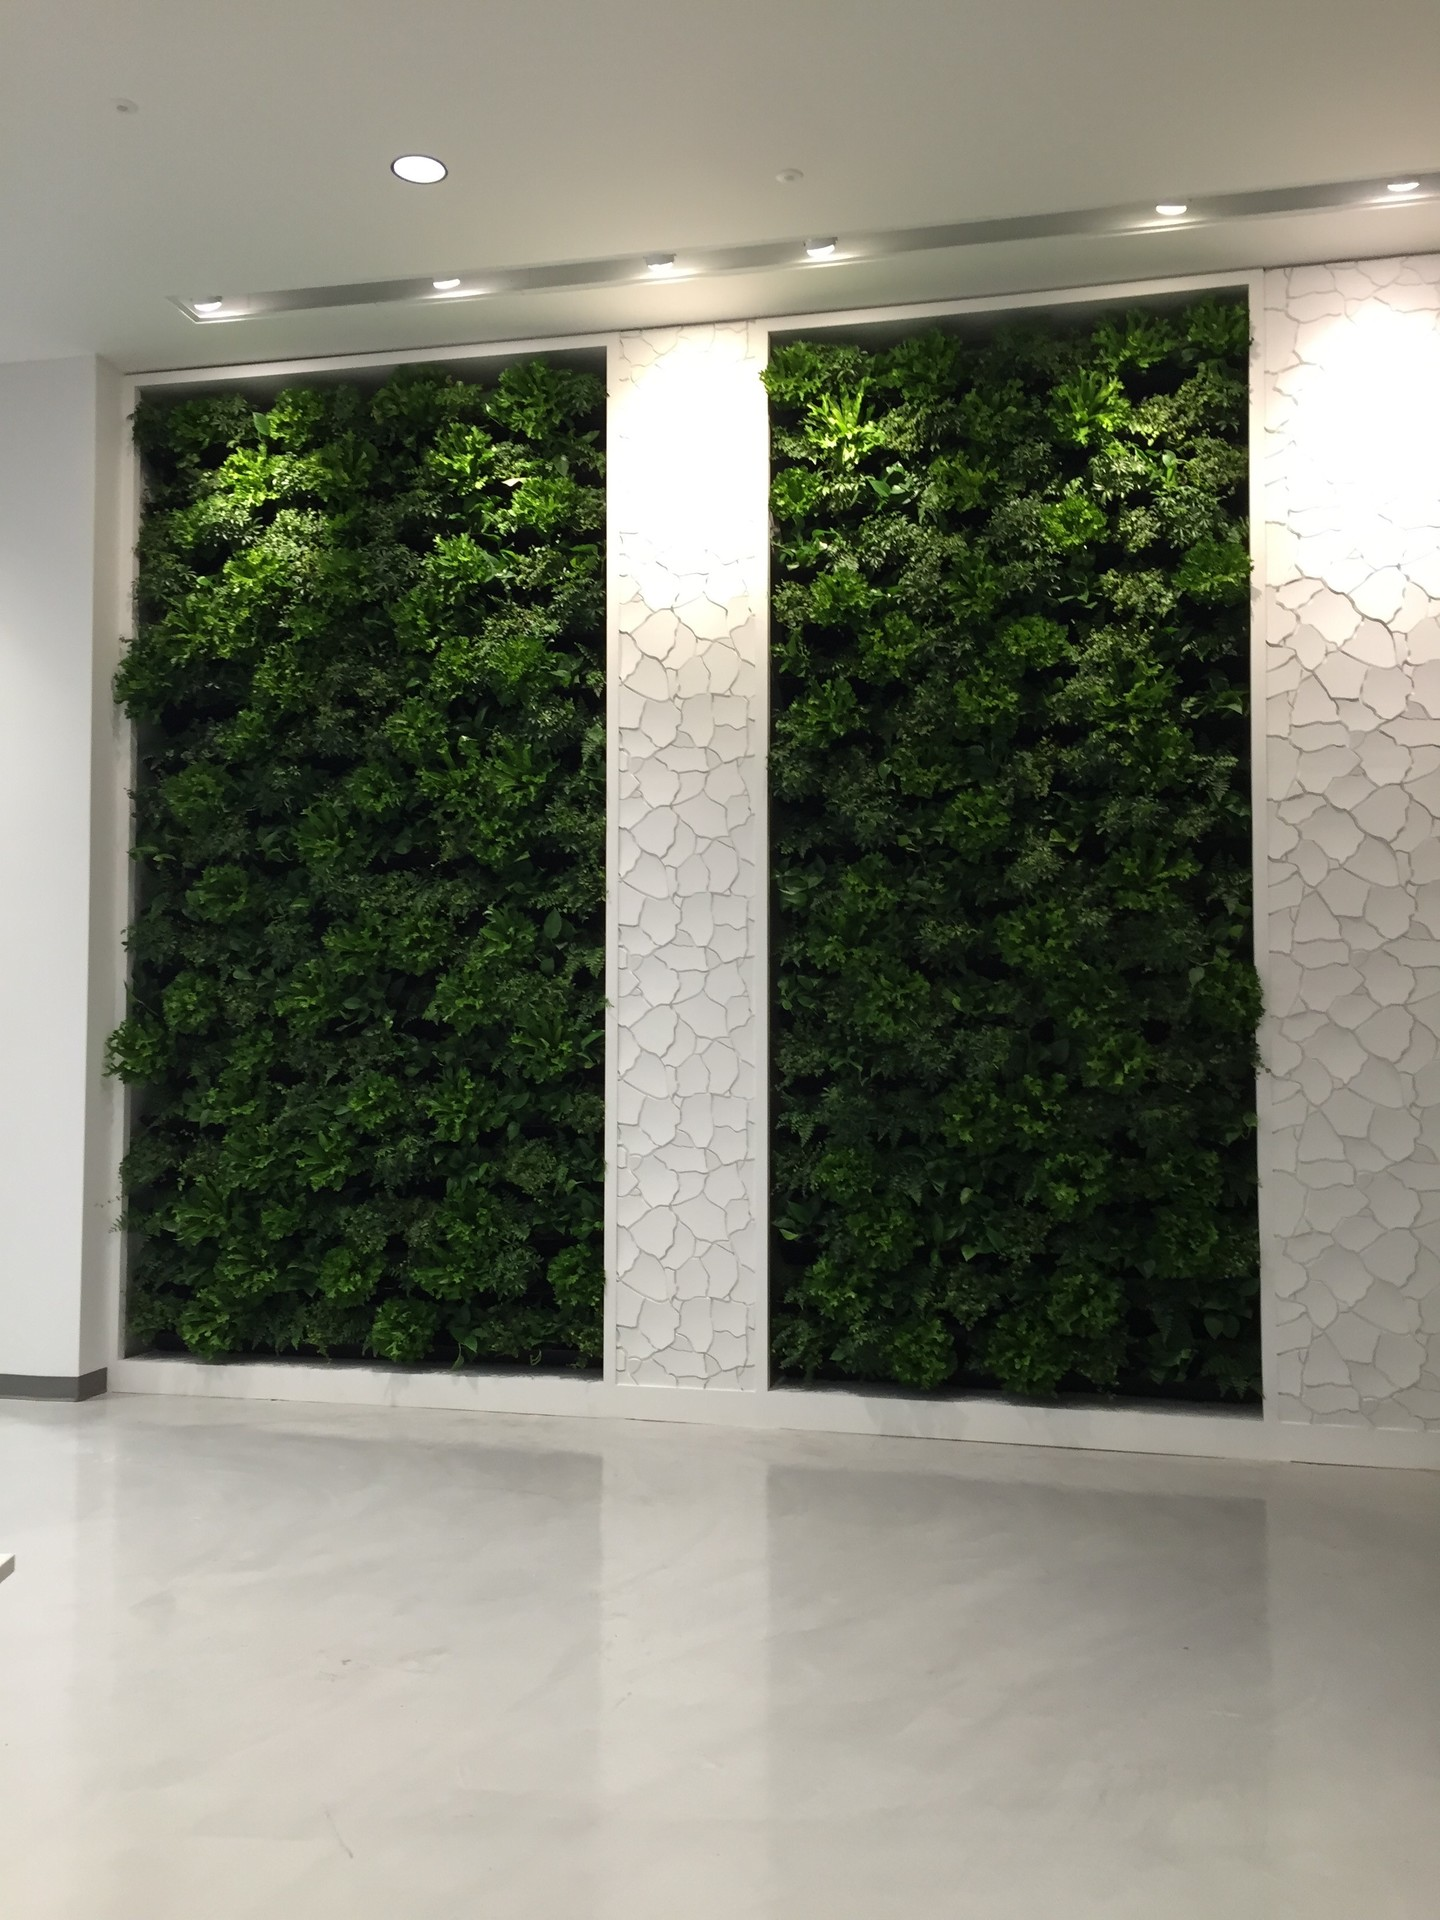 Natura's beautiful indoor green wall system is the perfect addition to any office space.